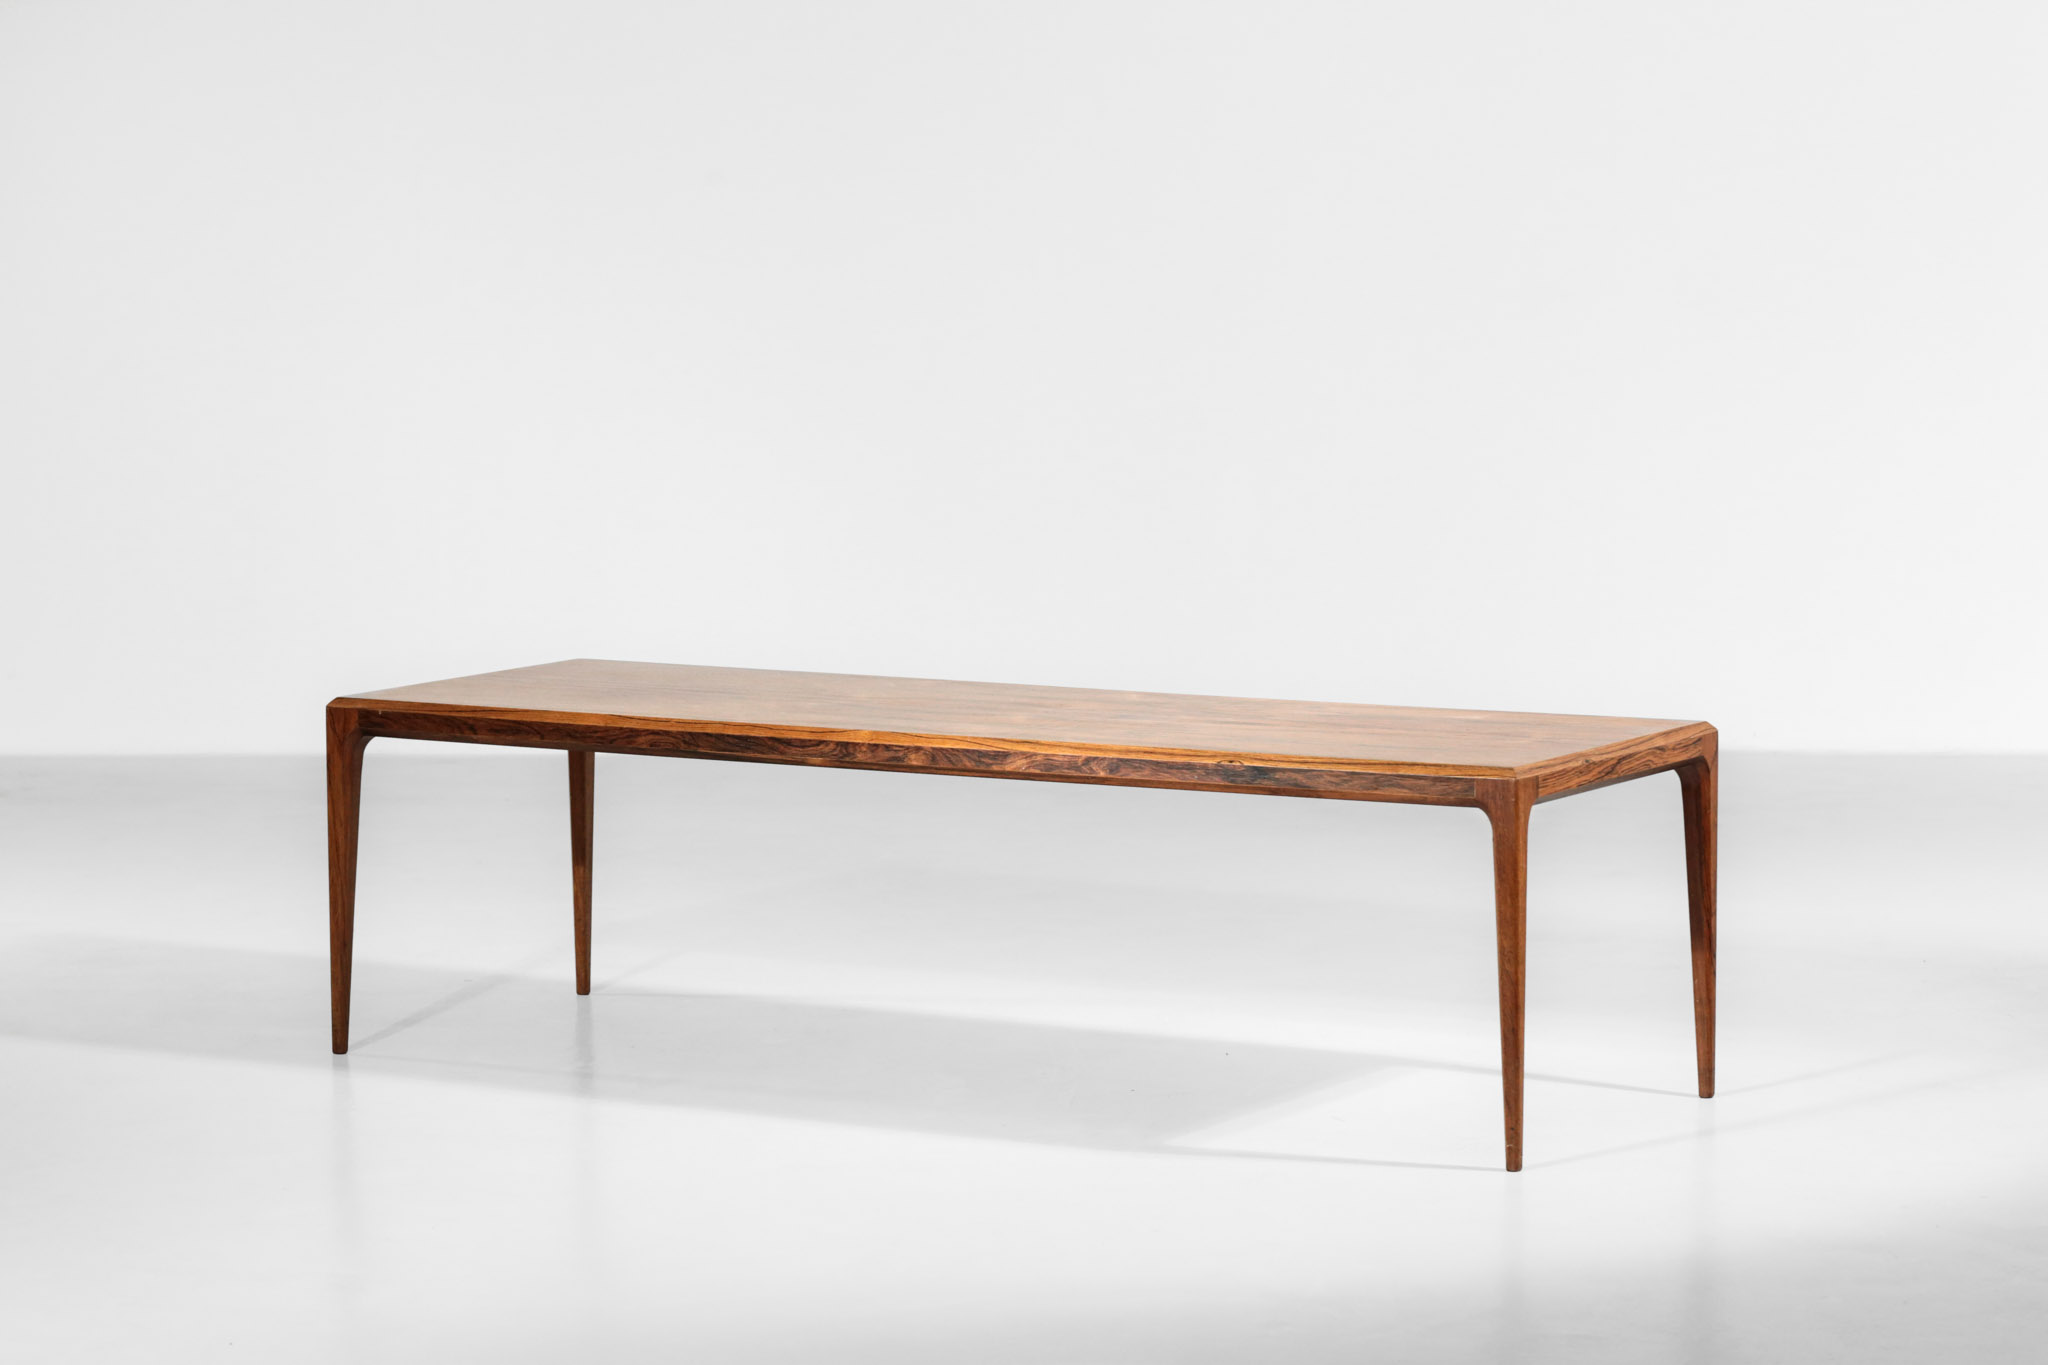 Large Johannes Andersen Coffee Table In Rosewood 1960s Danke Galerie